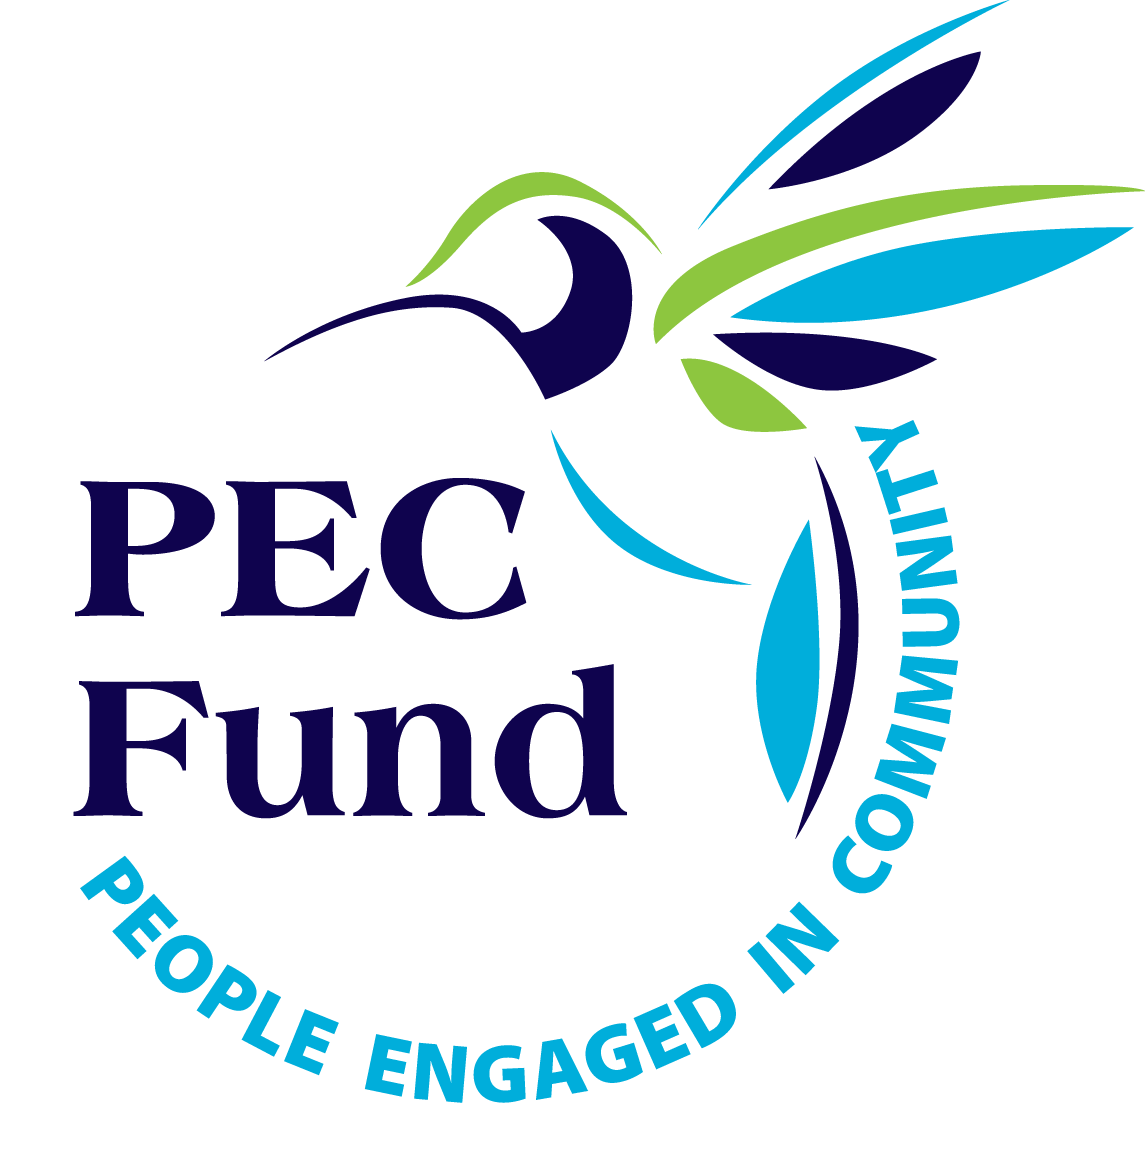 People Engaged in Community Fund